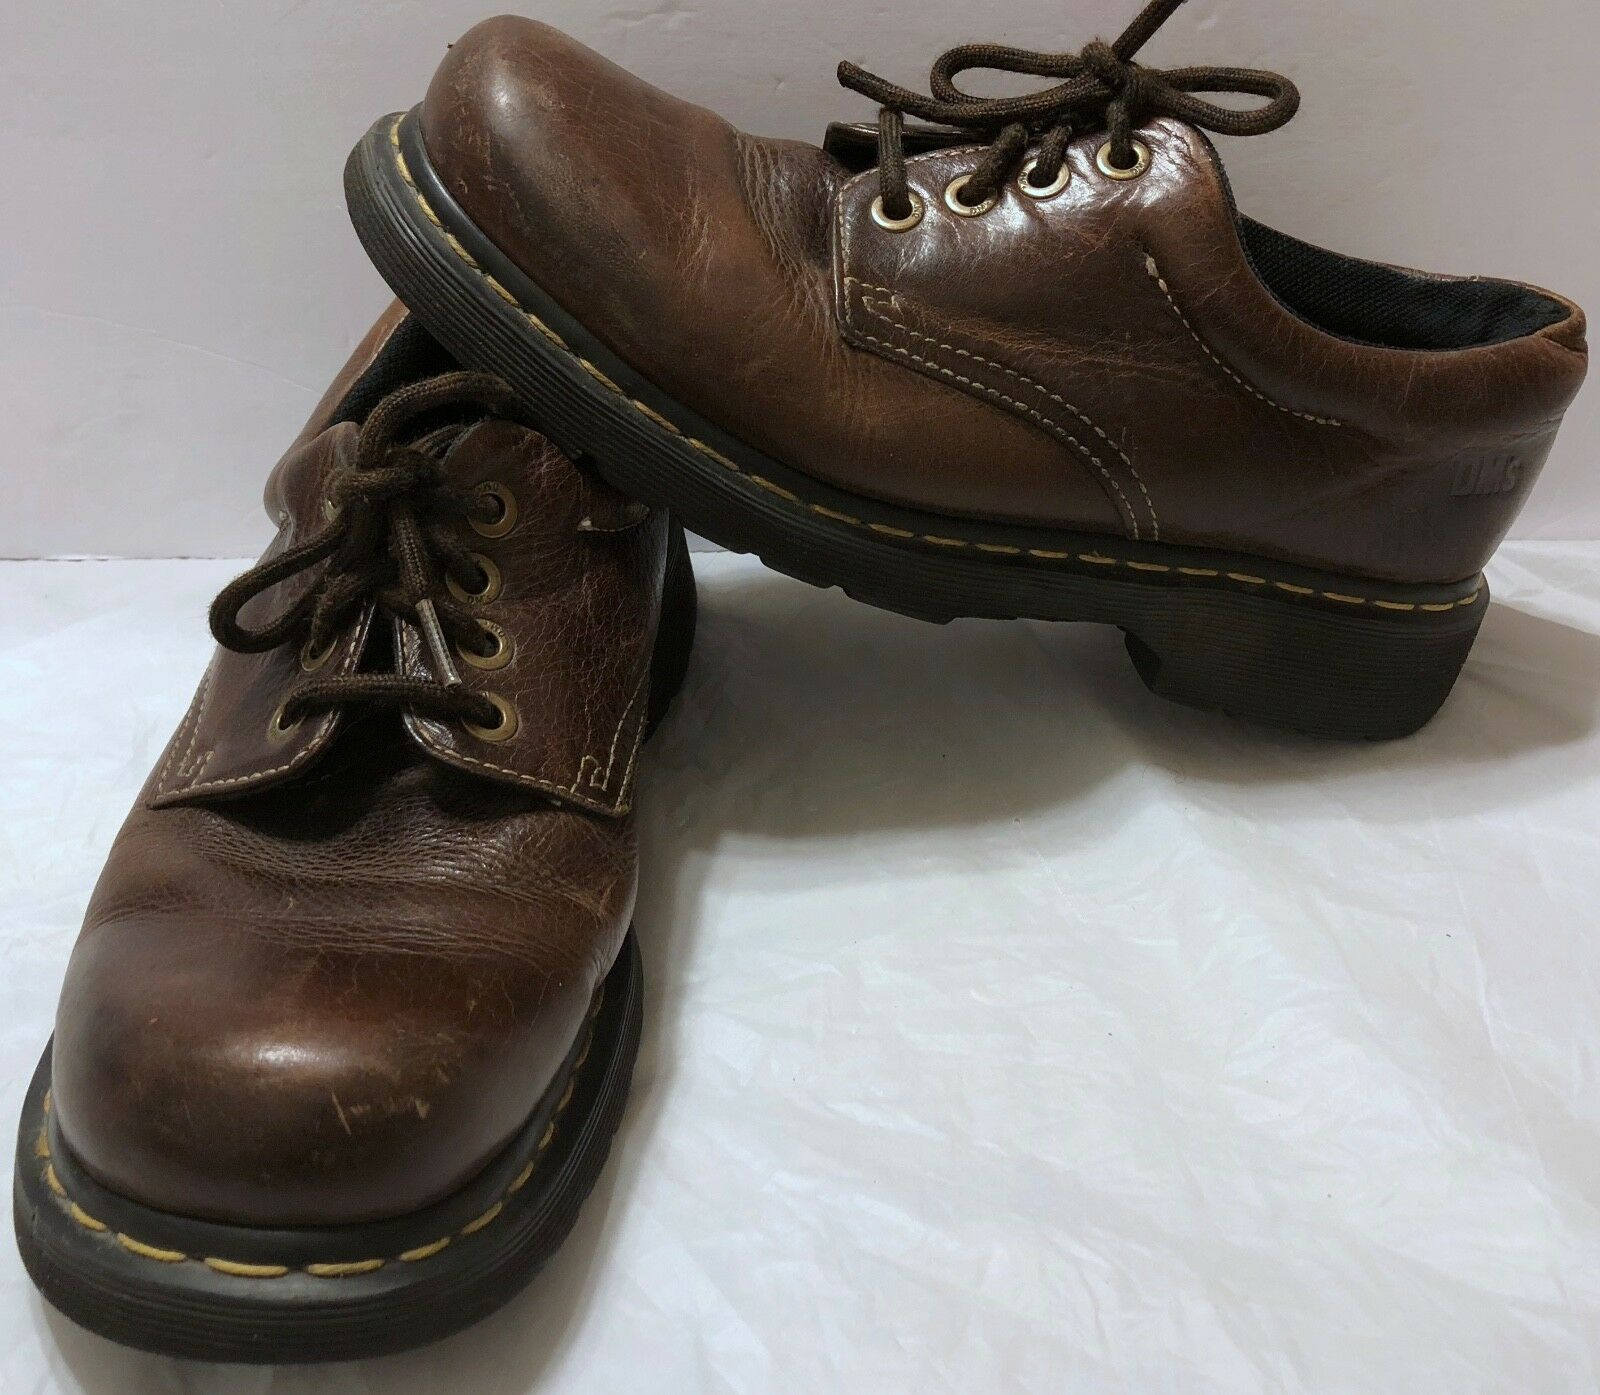 Dr. Martens Doc Martens Brown Leather Oxford shoes Sz 10 US Oxfords DMs Casual